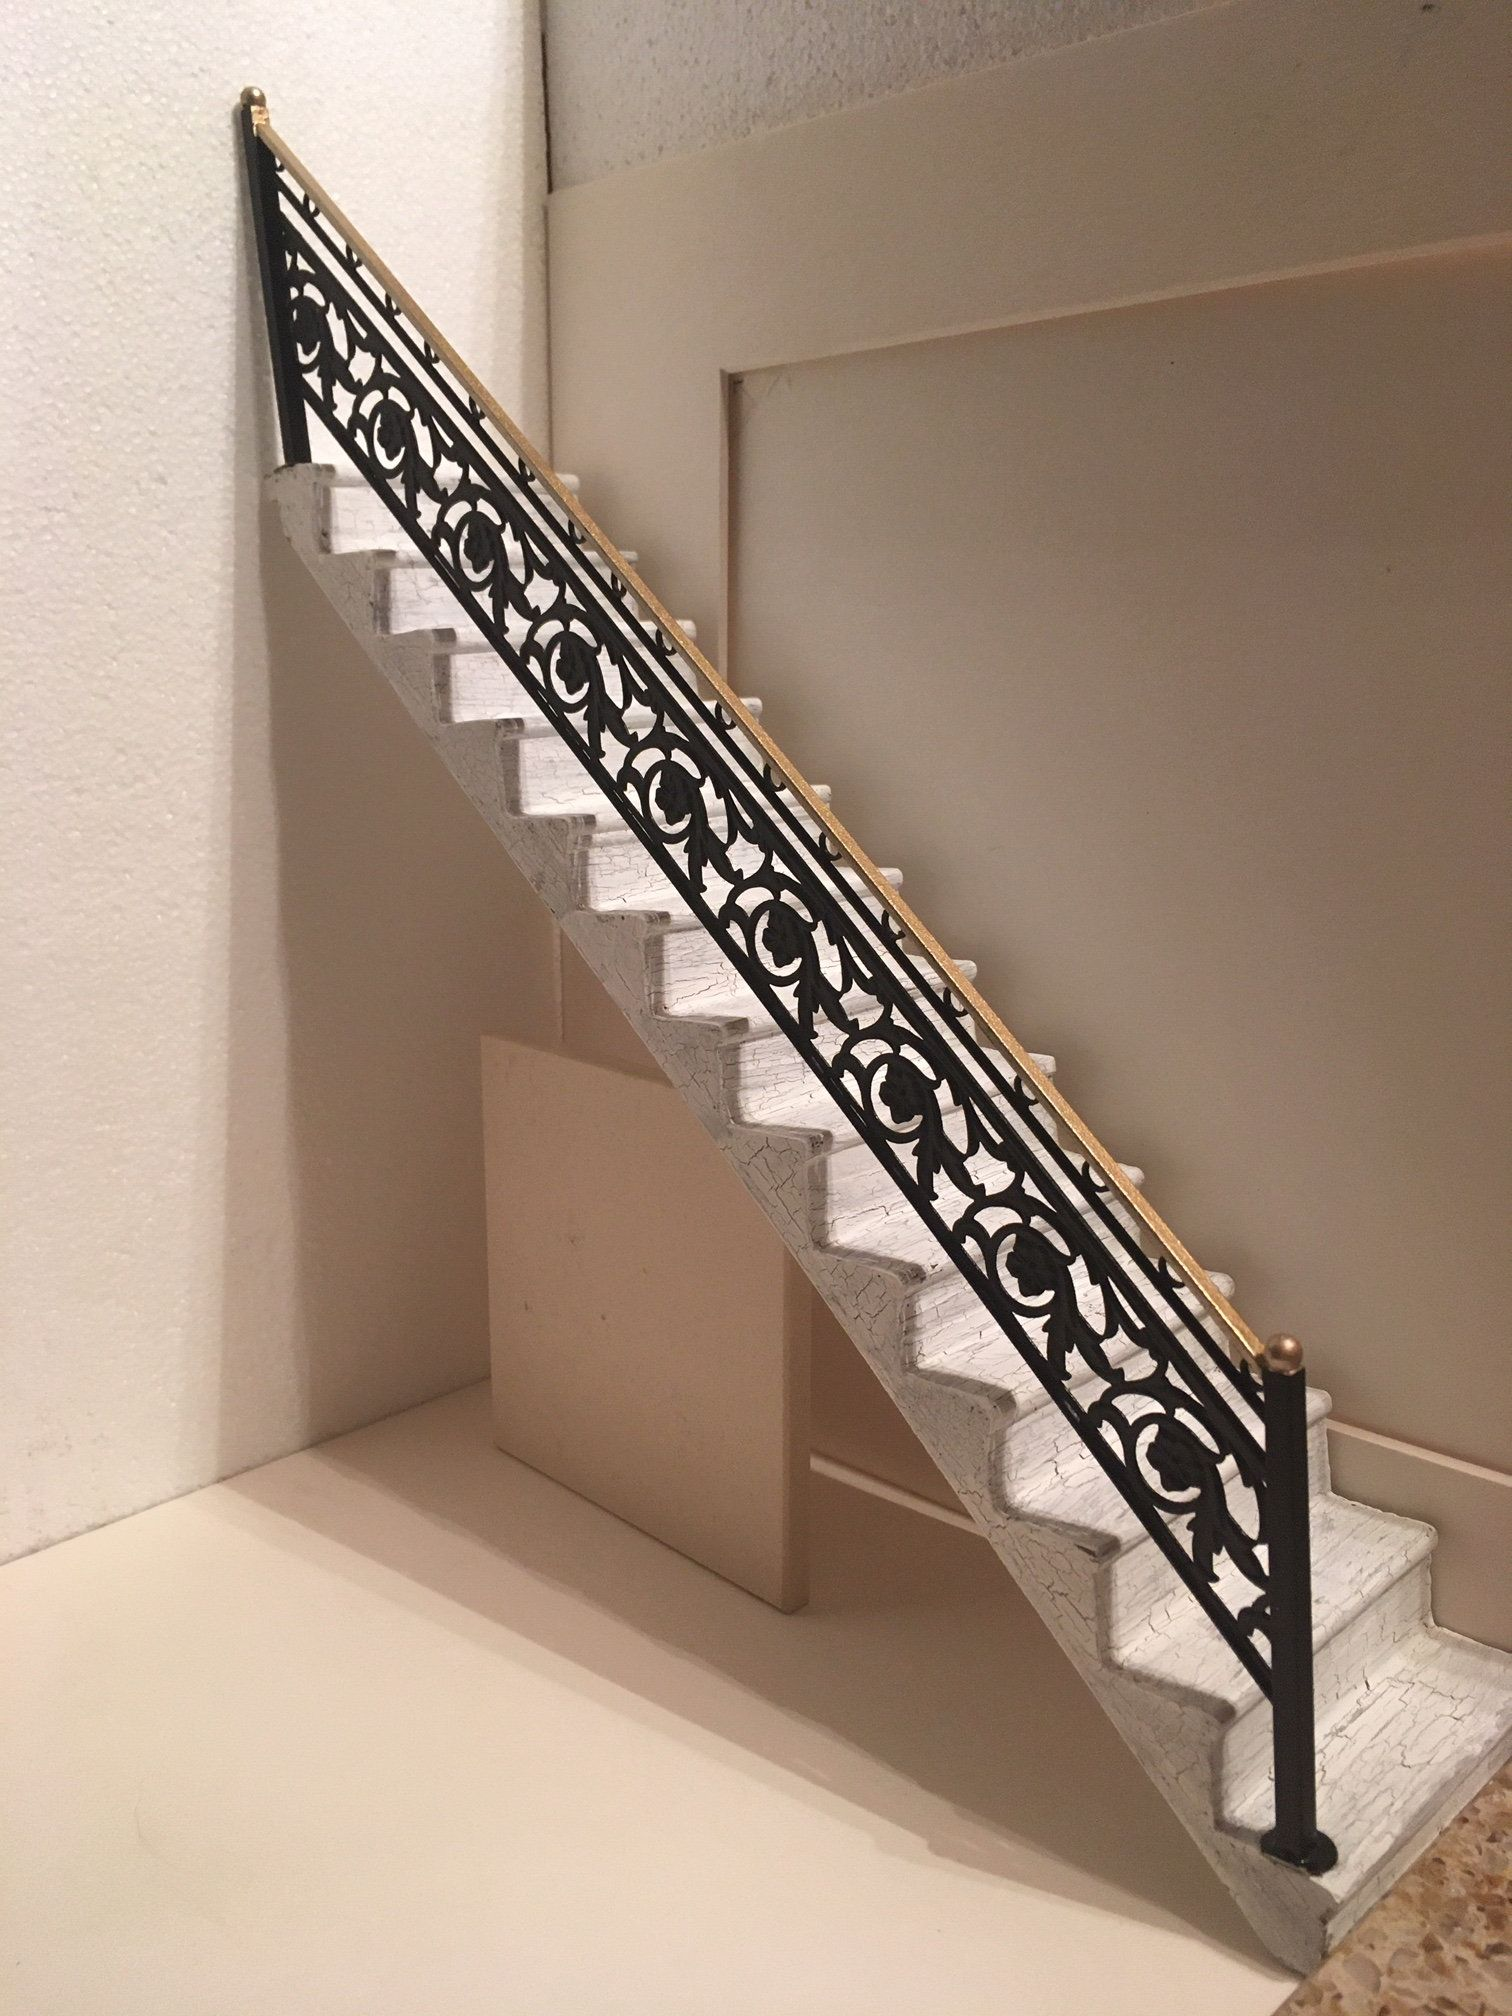 Dollhouse Miniature Handcrafted 1 12 1 Inch Scale Staircase With Metal Railing Ooak By Miniatureironworks On E In 2020 Metal Handrails Metal Railings Wood Stairs